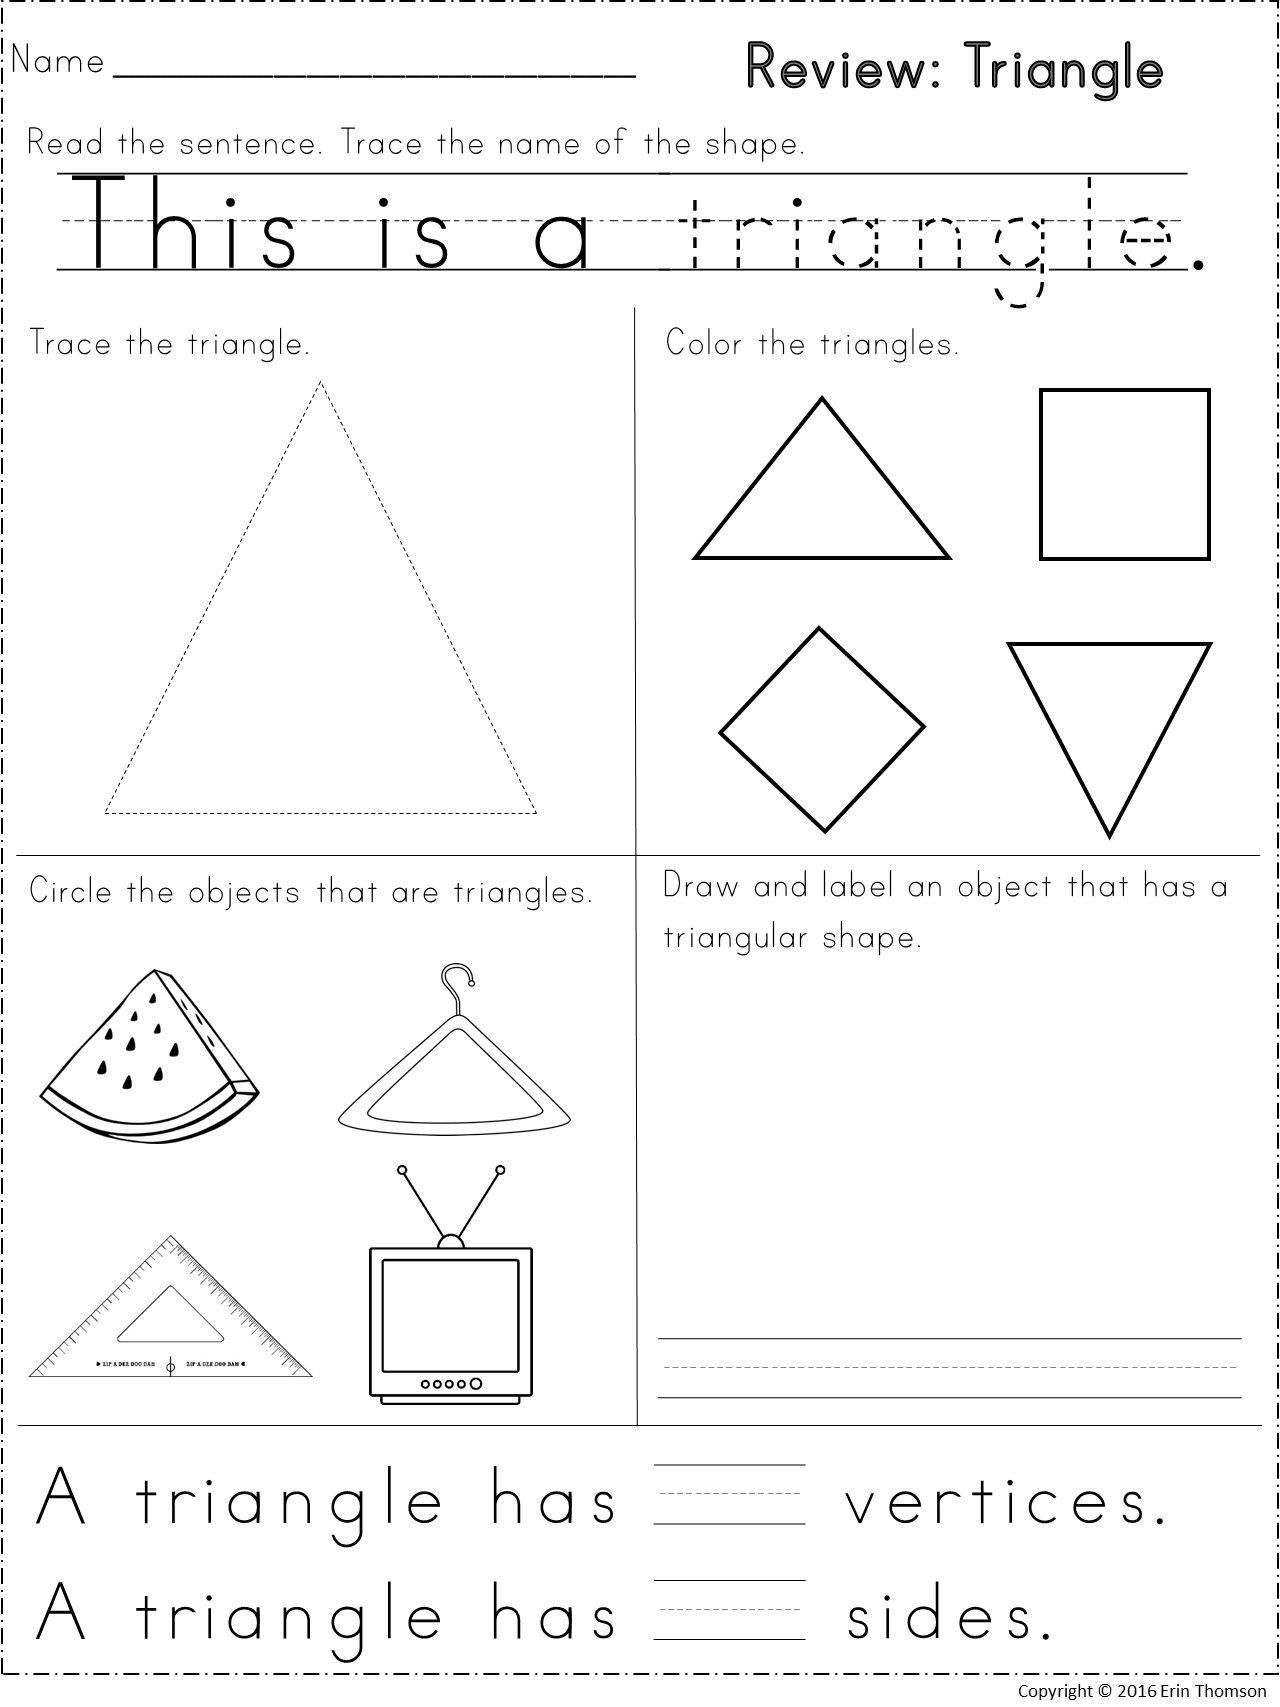 Triangle Worksheet For Kindergarten Kindergarten Math